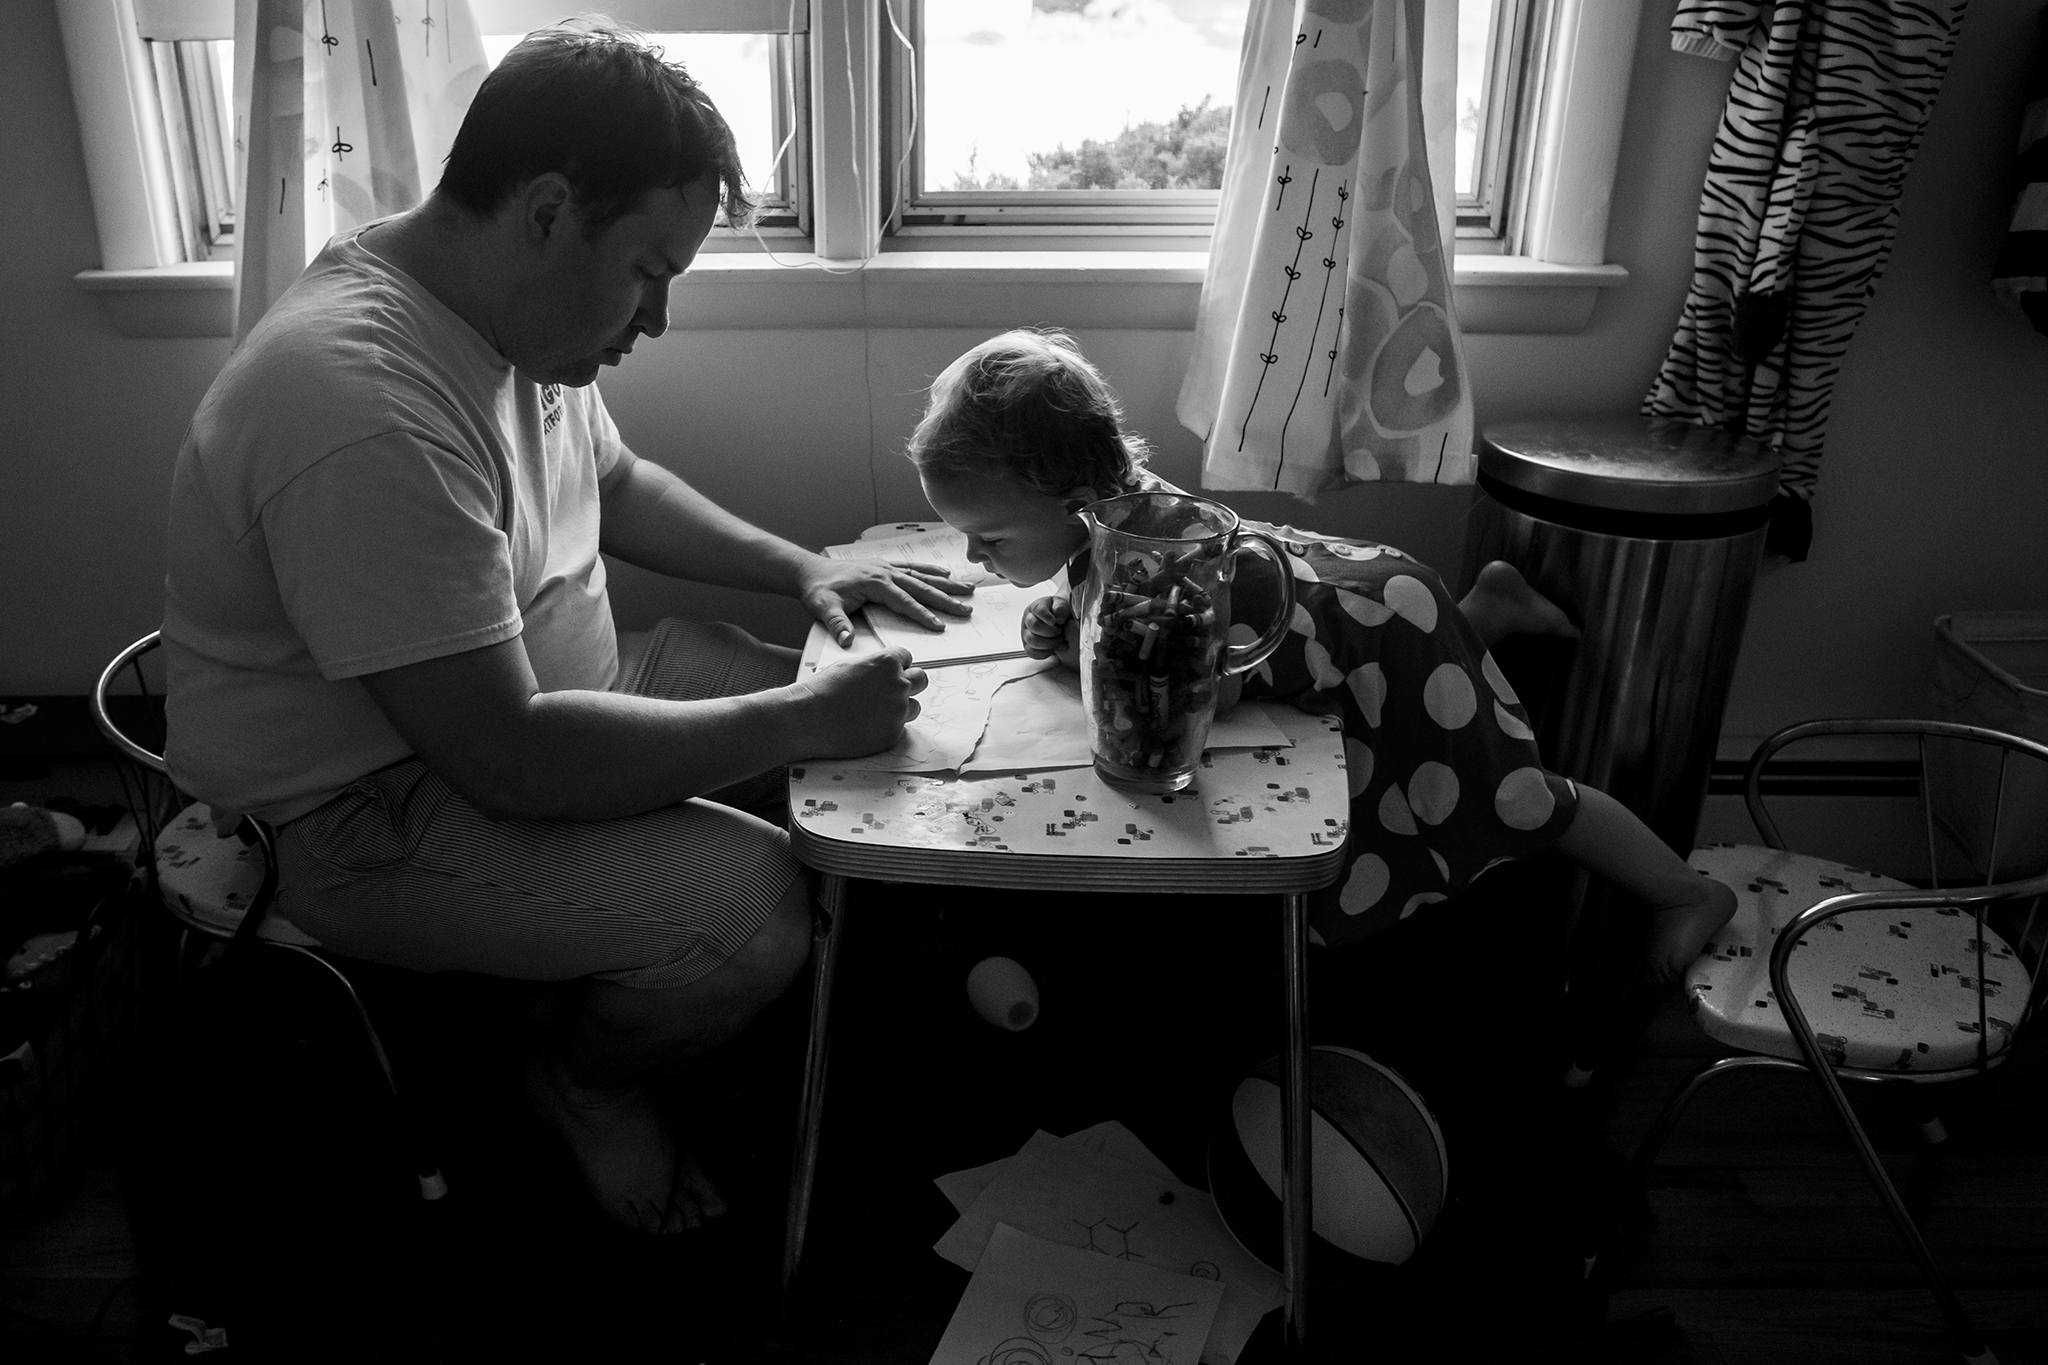 Connecticut family photography featuring father and daughter drawing in dramatic light and shown in black and white.